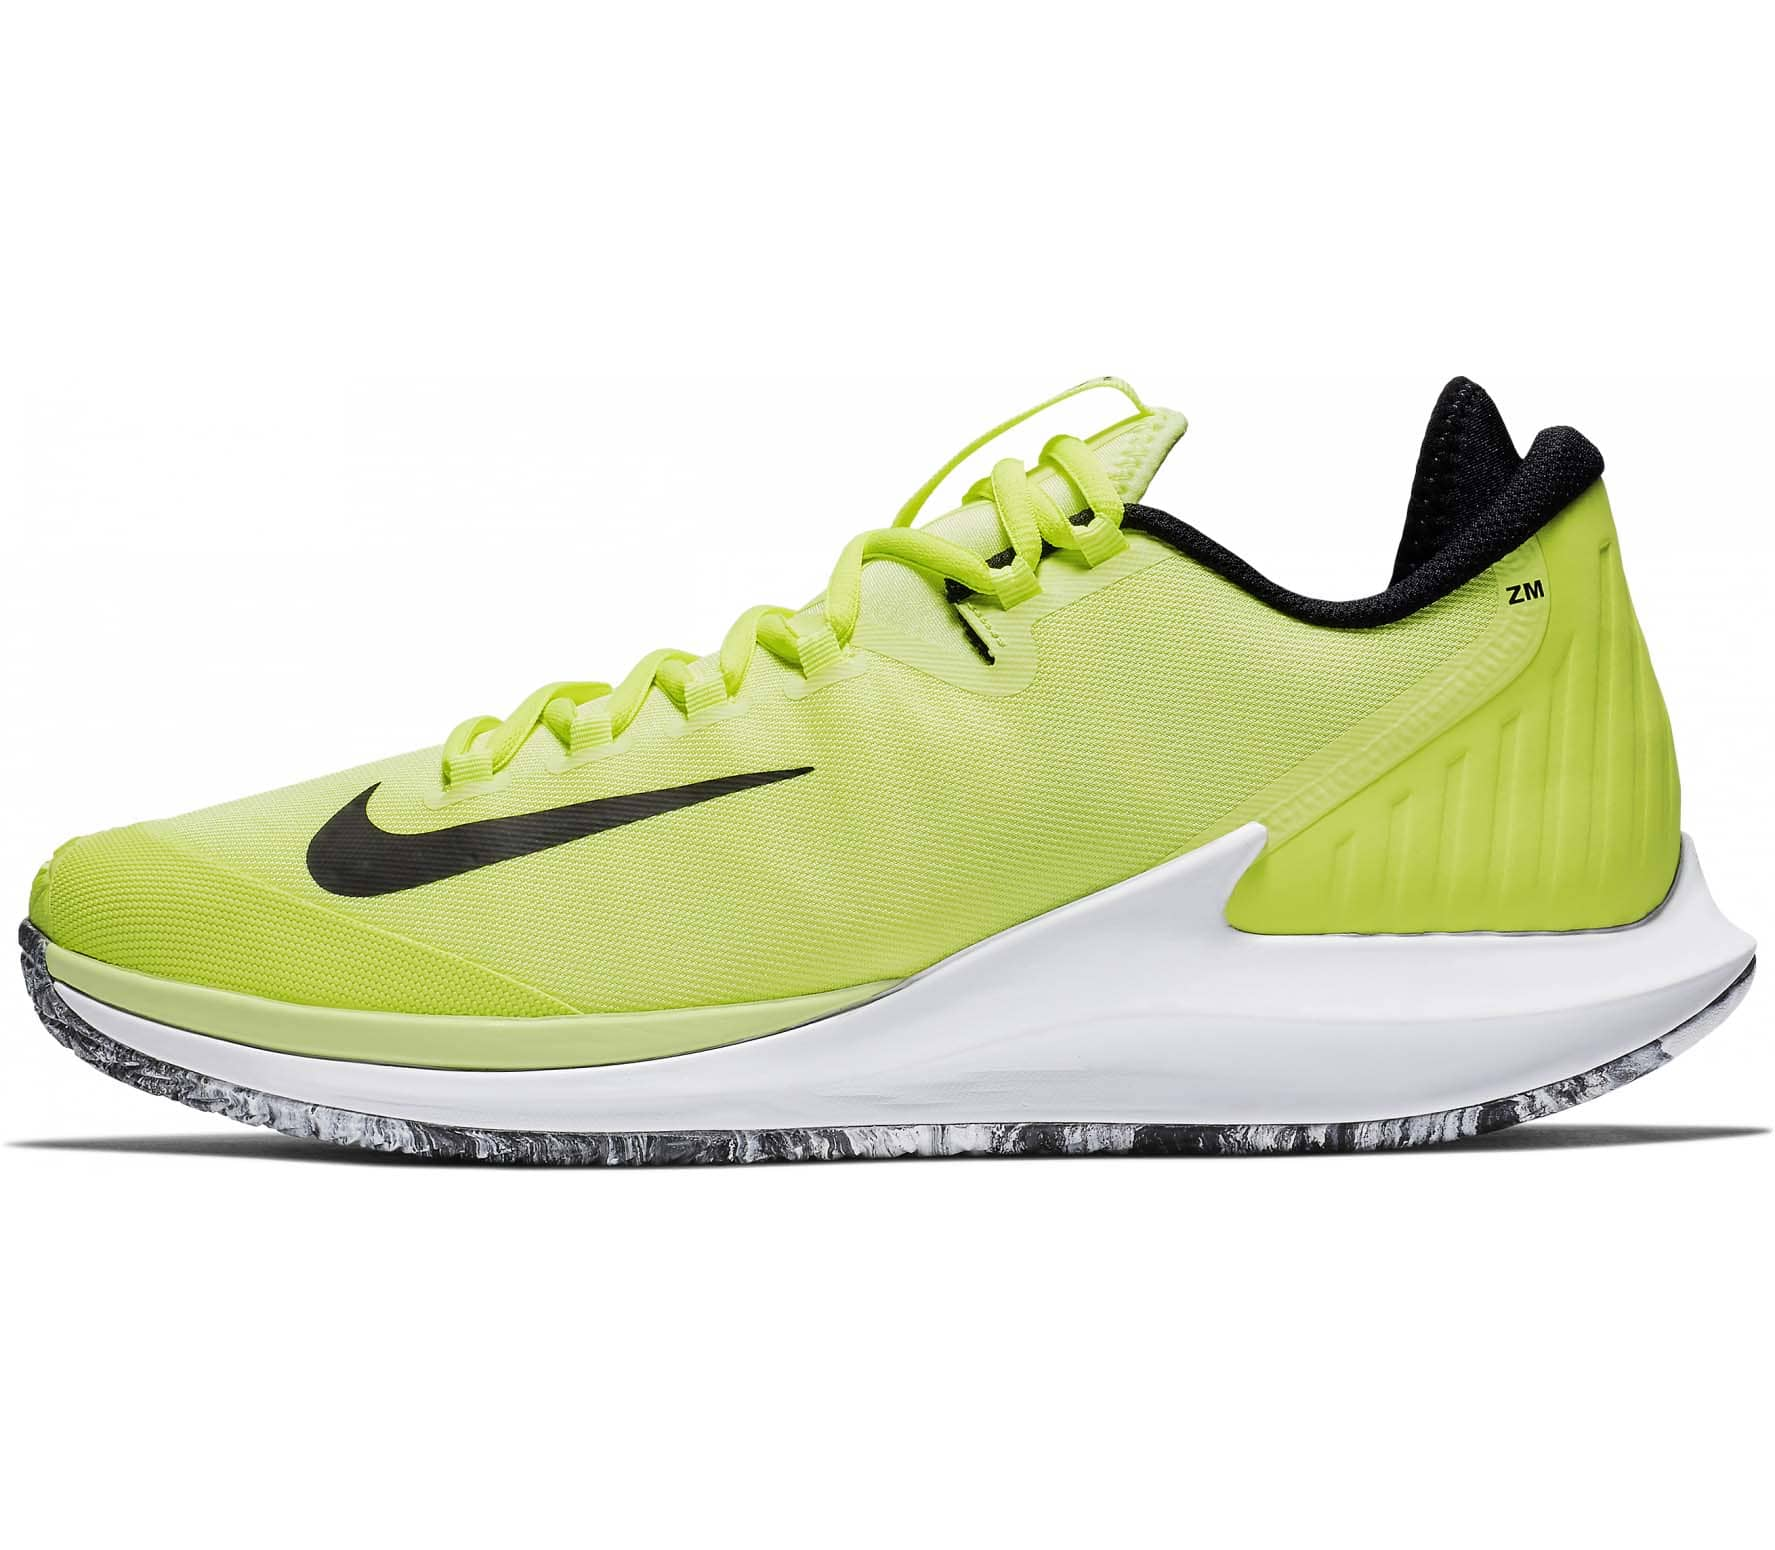 37d33f3f1b31 Nike - Court Air Zoom Zero Premium men s tennis shoes (yellow) - buy ...